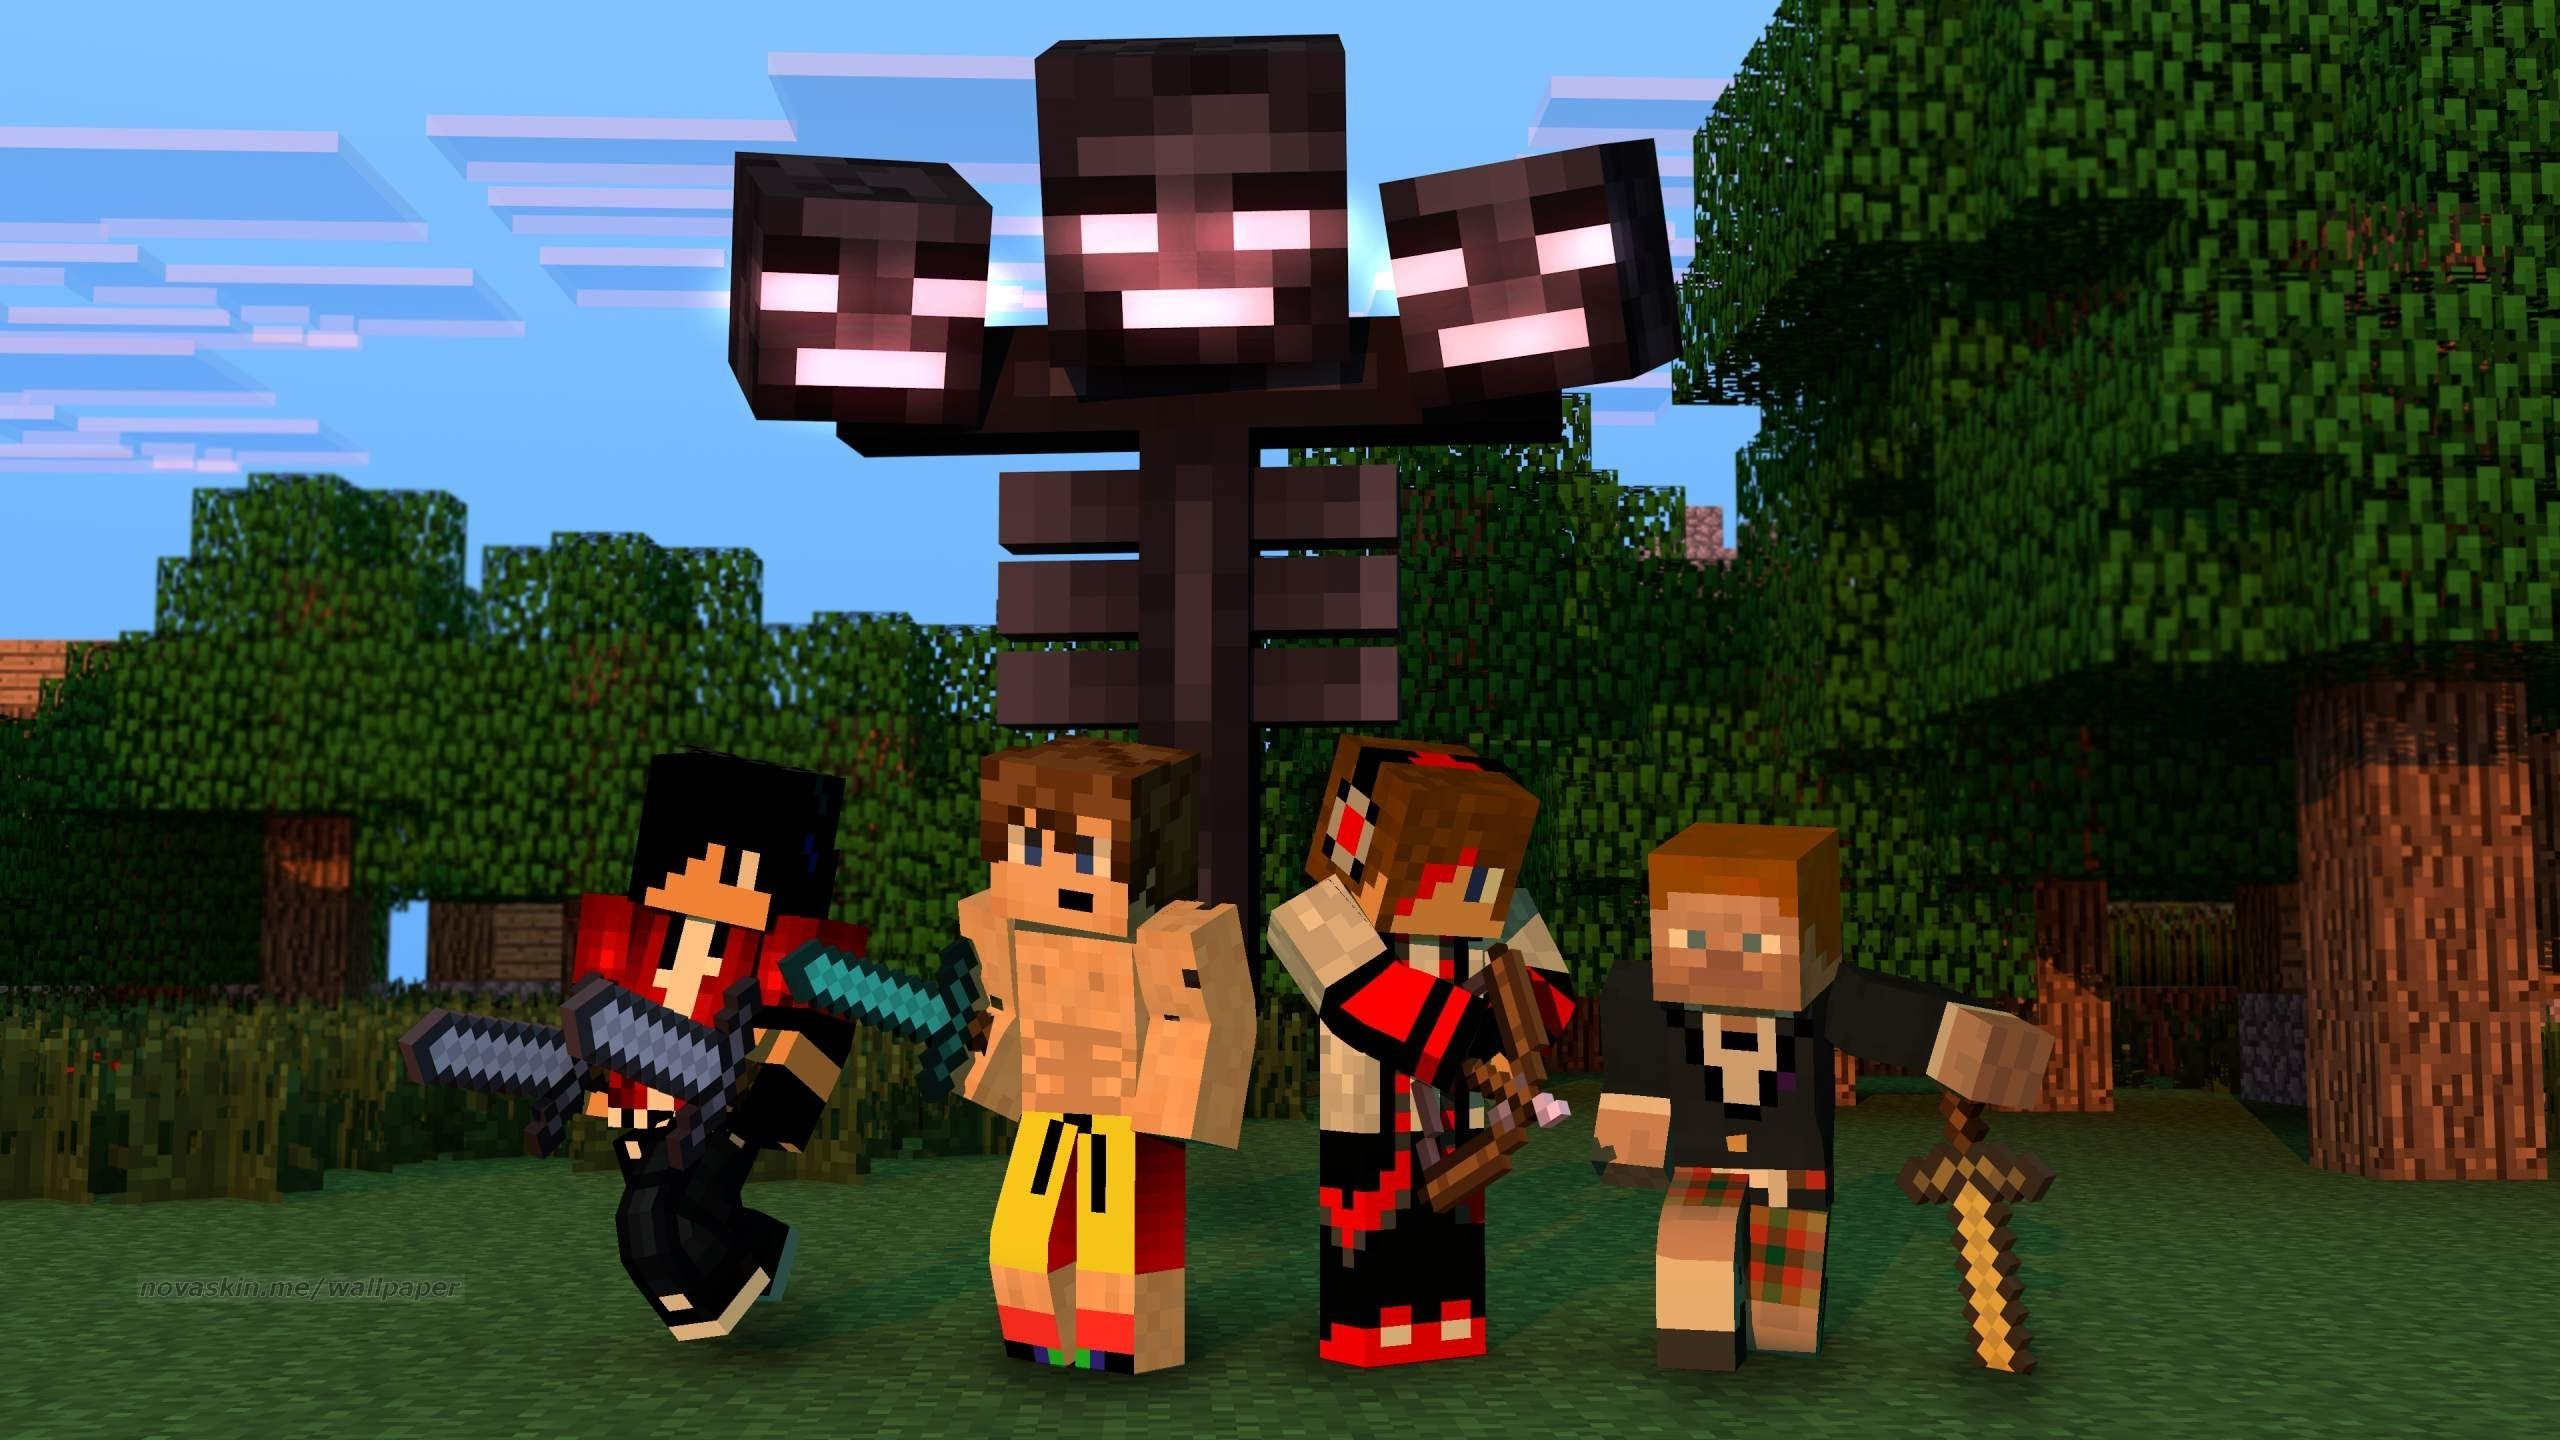 FREE HD Minecraft Wallpapers & Photo Editing System